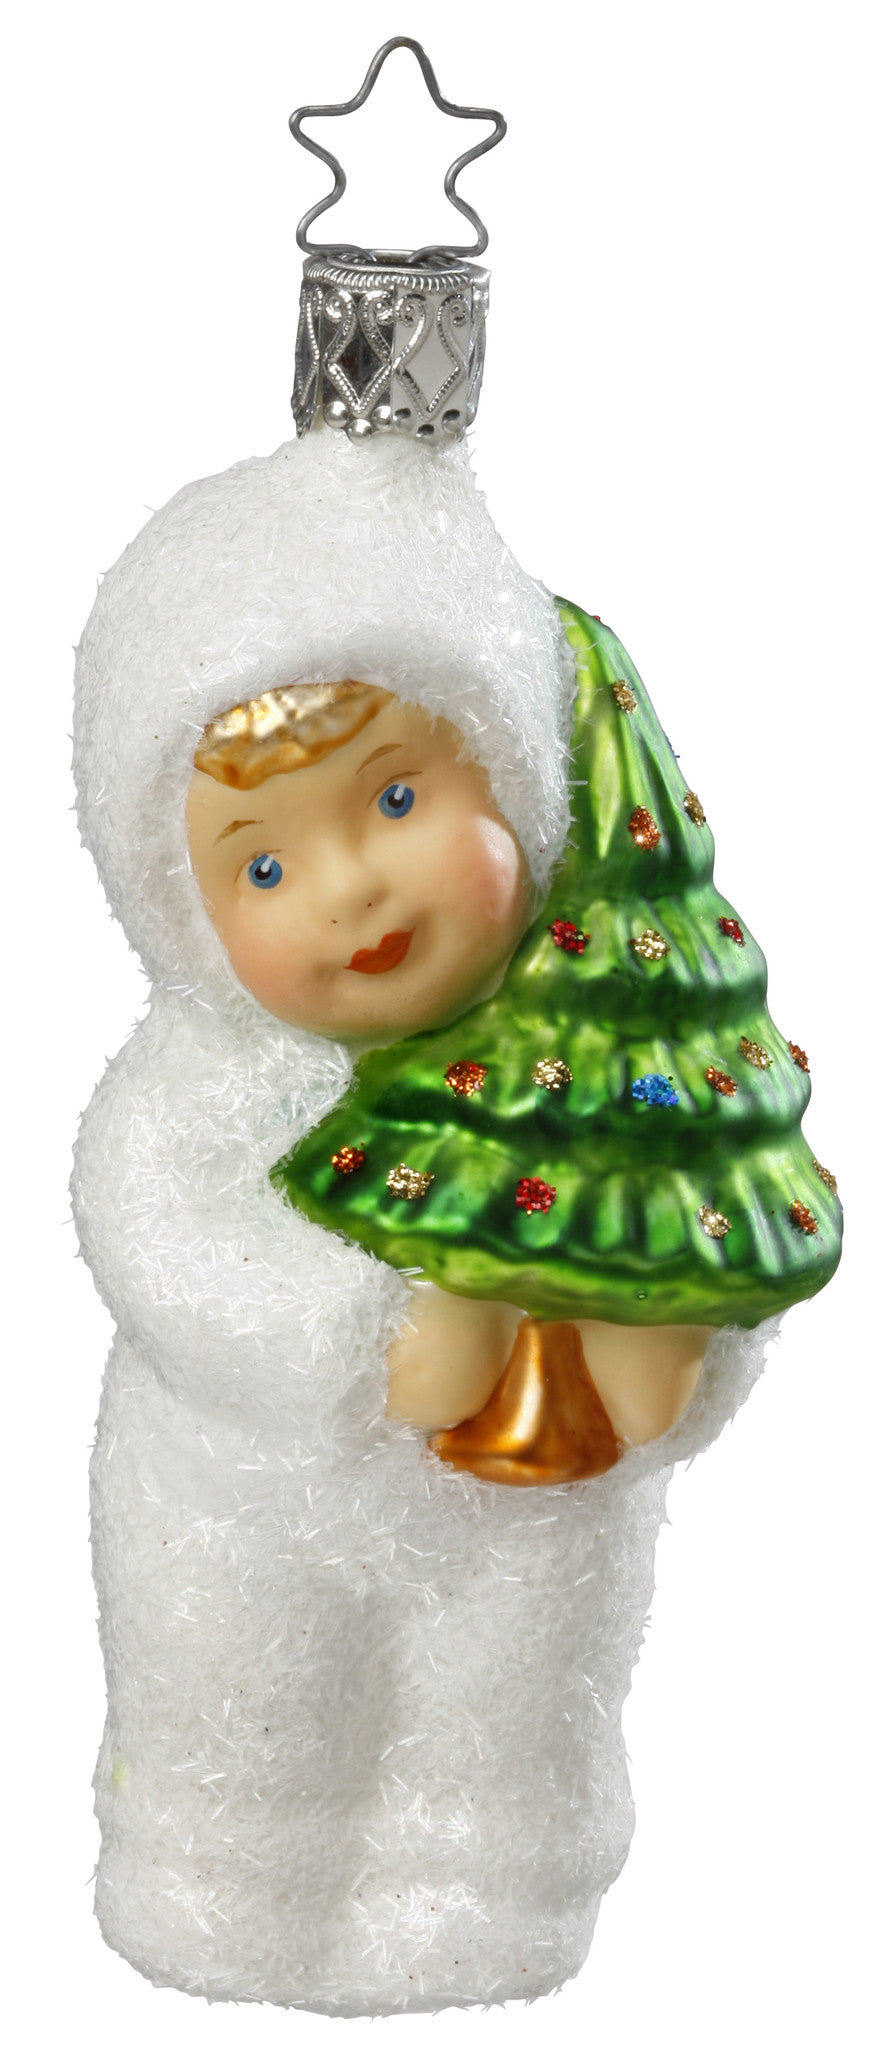 Kinder of Tradition - Child with Christmas Tree Ornament